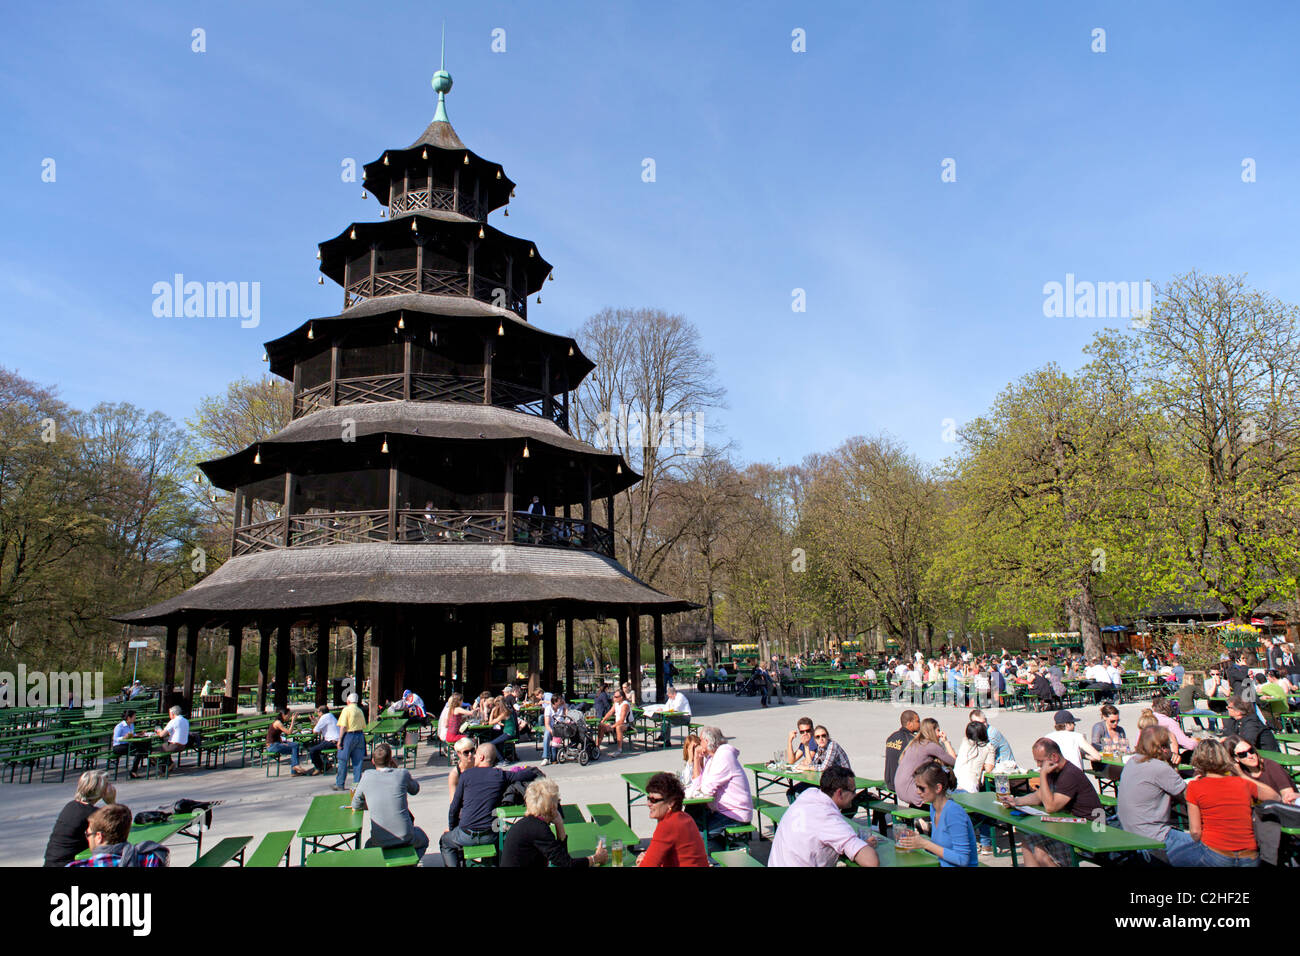 chinese tower munich stock photos chinese tower munich stock images alamy. Black Bedroom Furniture Sets. Home Design Ideas